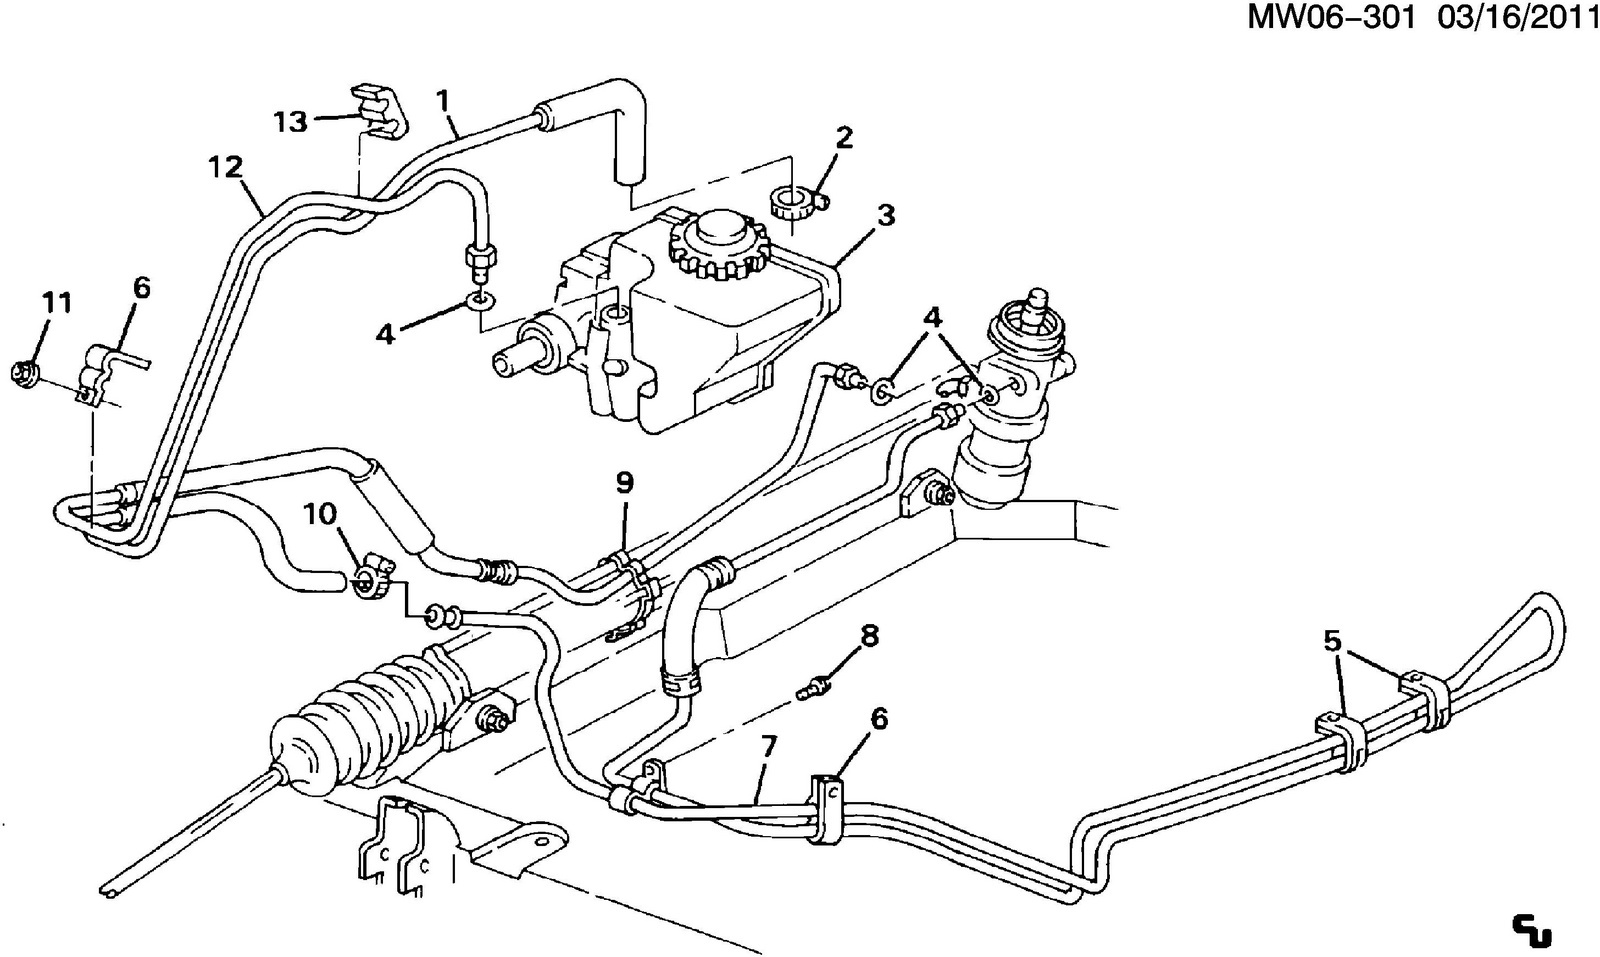 1996 Mazda Millenia Wiring Diagram And Electrical System Troubleshooting also Ford Car Helps as well Pontiac Bonneville 3 8 Engine Diagram further 2000 Buick Century Heating Diagram further Automotive Wiring Repair Car Diagrams App Reading Harness Connectors Auto Electrical Diagram For Wire Cars. on 1994 buick lesabre vacuum hose diagram